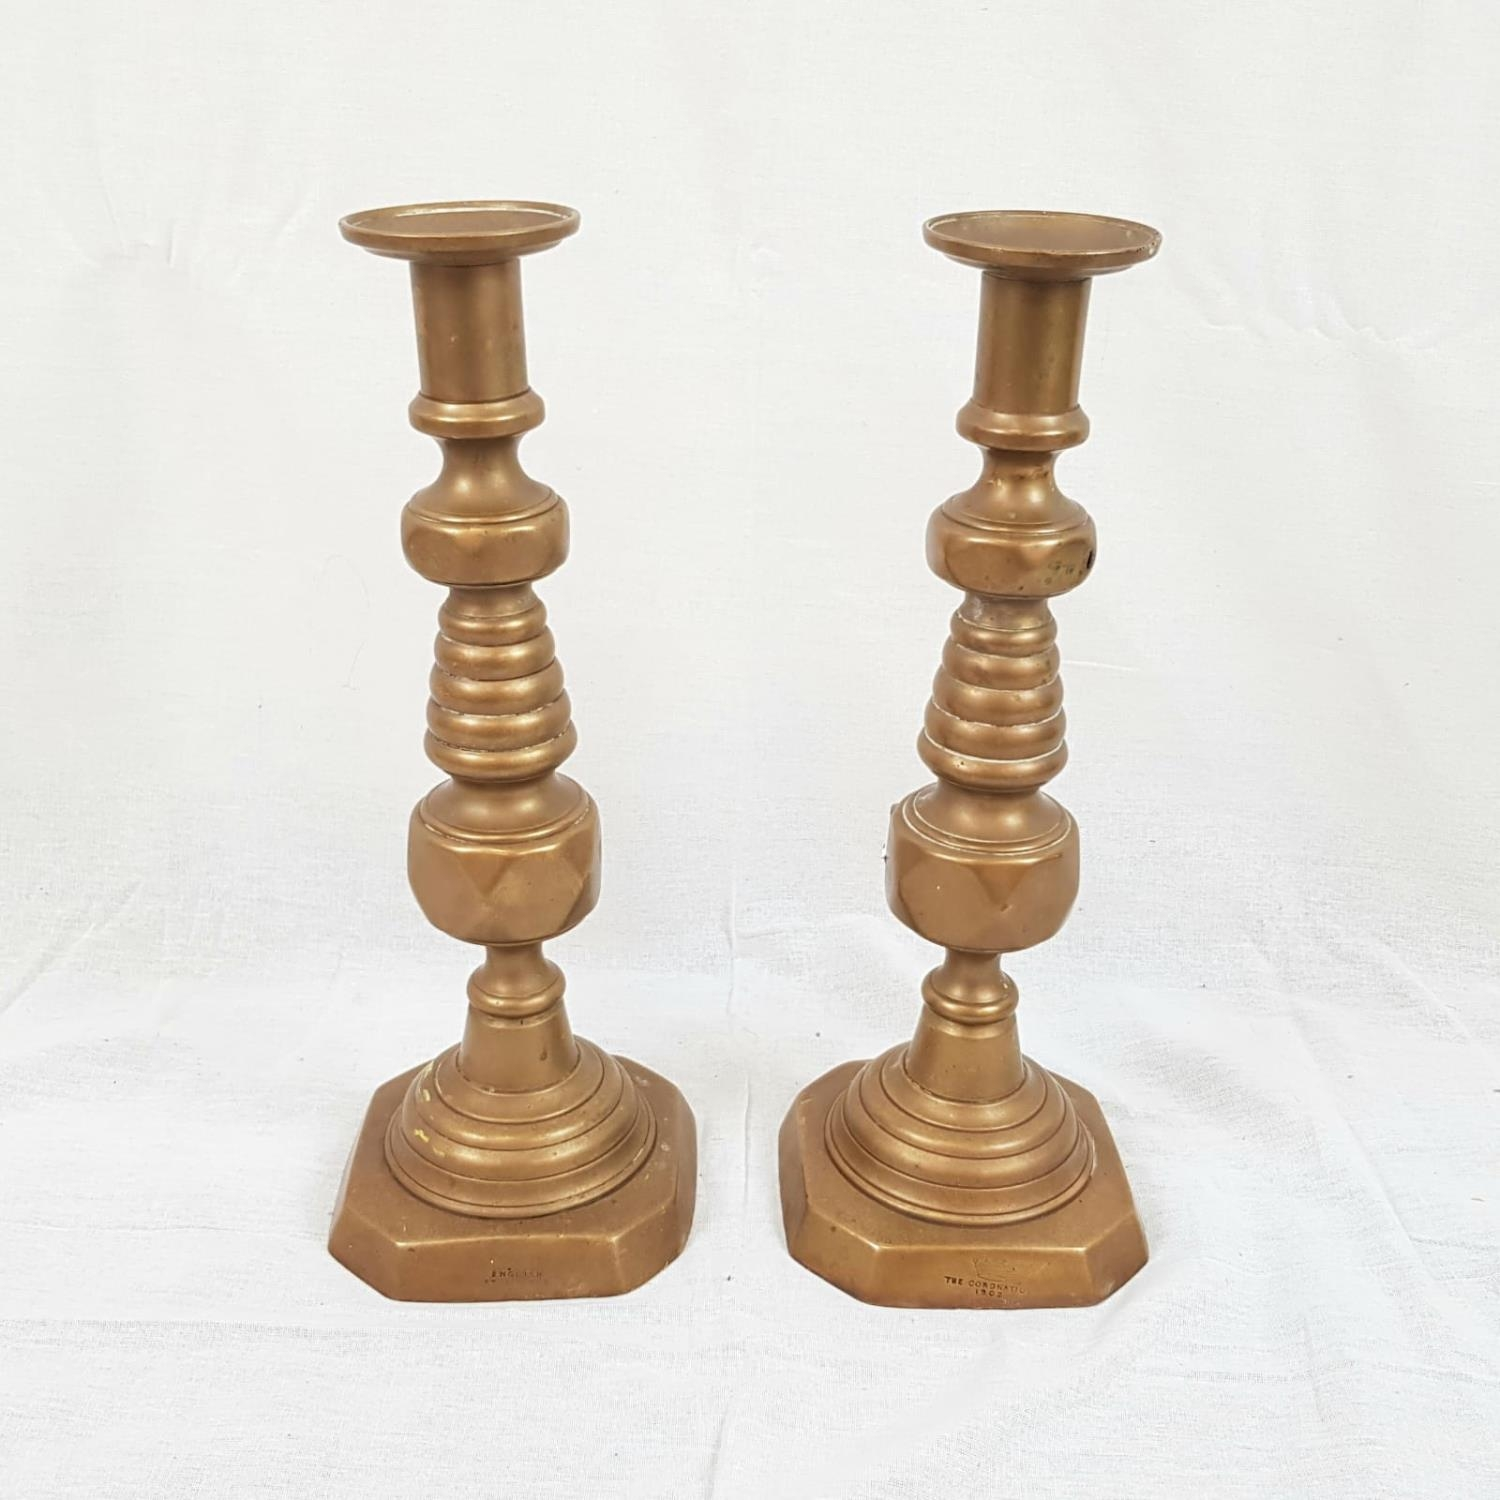 Antique BRASS CANDLESTICKS stamped and dated 1902 Coronation, plus English and registered number.